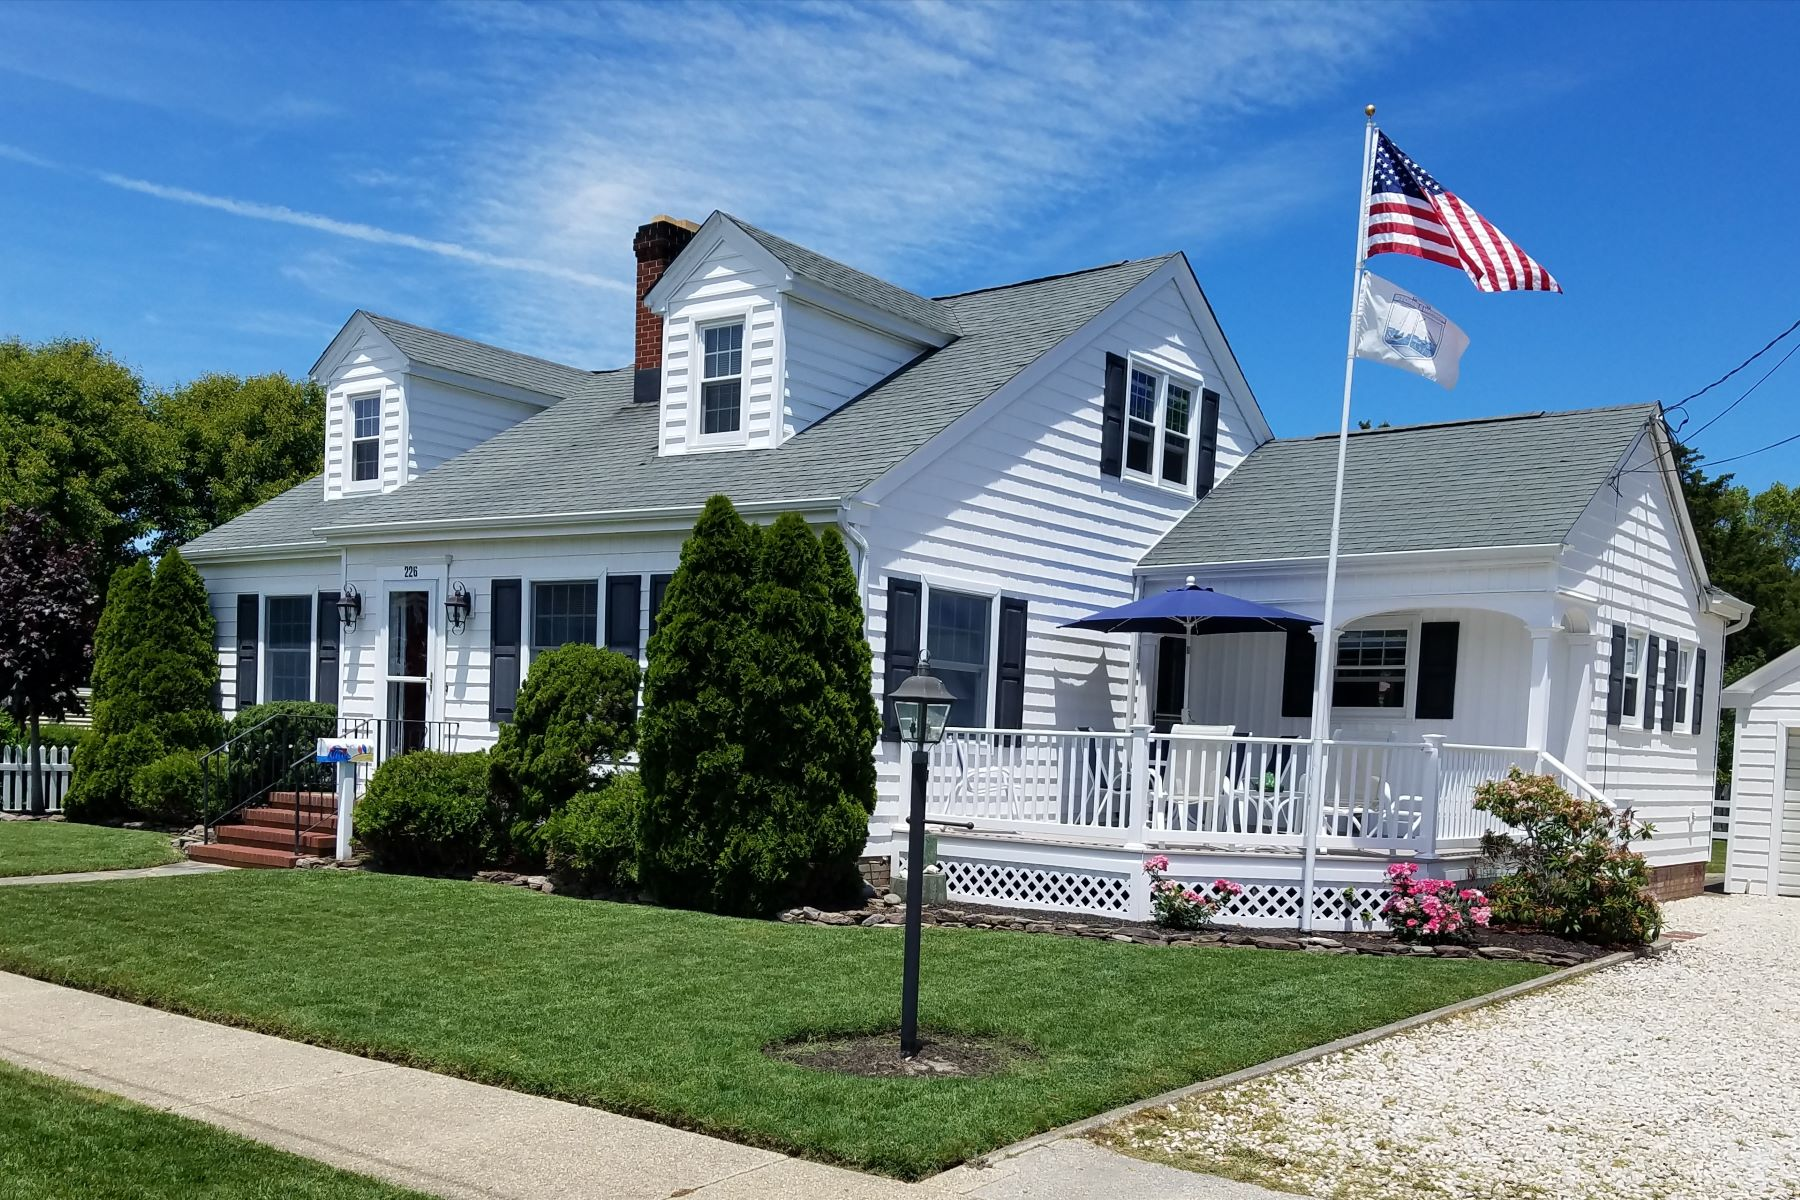 Single Family Home for Rent at Comfortable Vacation Home 226 107th Street, Stone Harbor, New Jersey 08247 United States